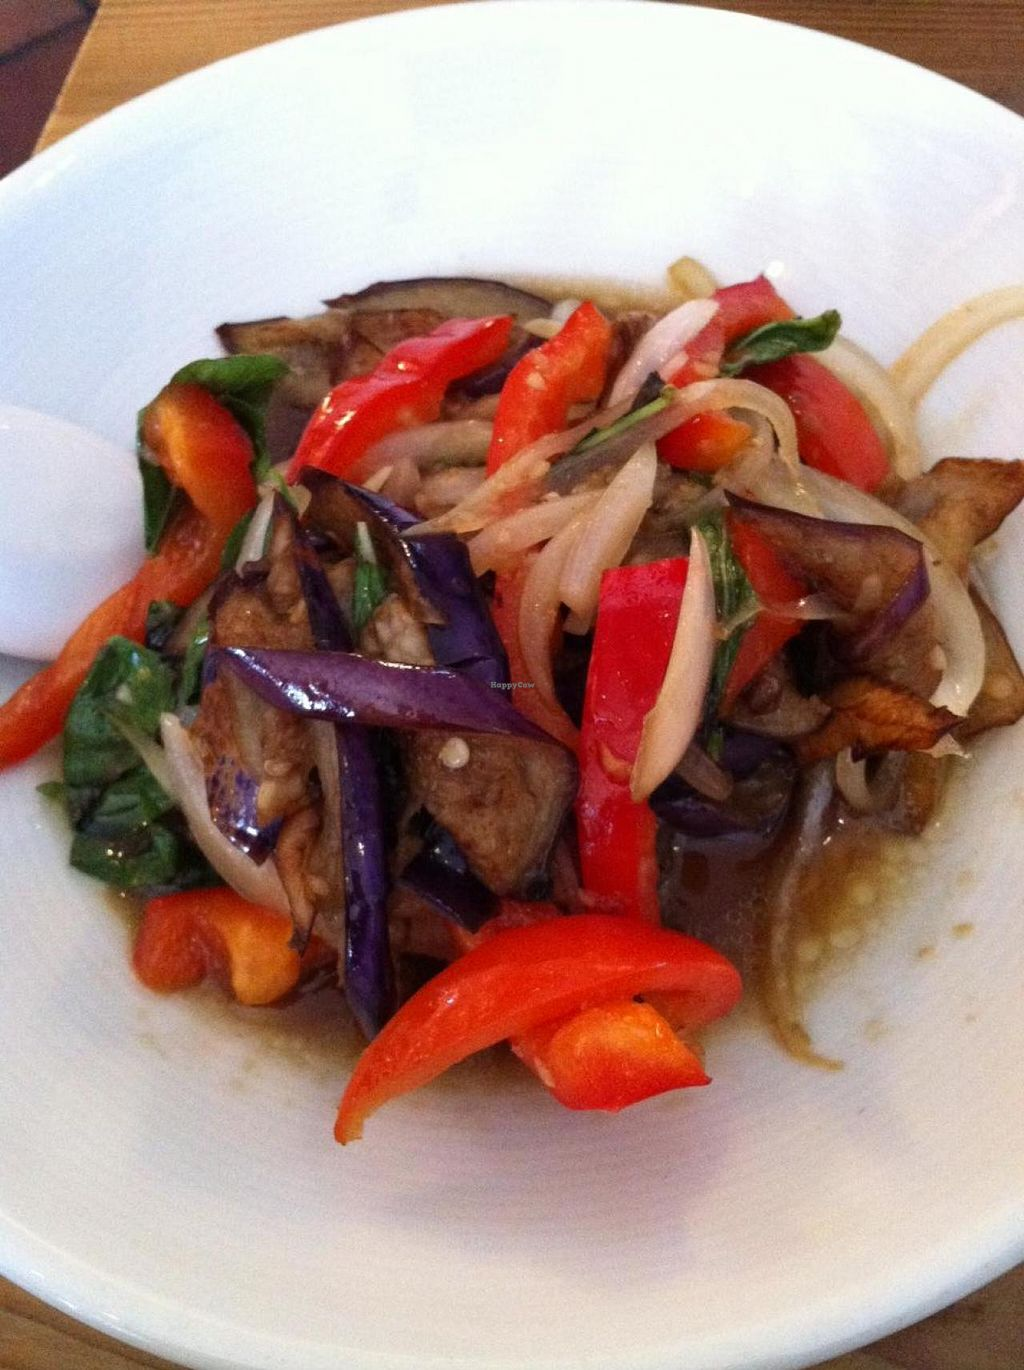 """Photo of Bob likes Thai Food  by <a href=""""/members/profile/vegan%20frog"""">vegan frog</a> <br/>Veganized EGGPLANT PAD KA POW  <br/> September 7, 2014  - <a href='/contact/abuse/image/41686/79354'>Report</a>"""